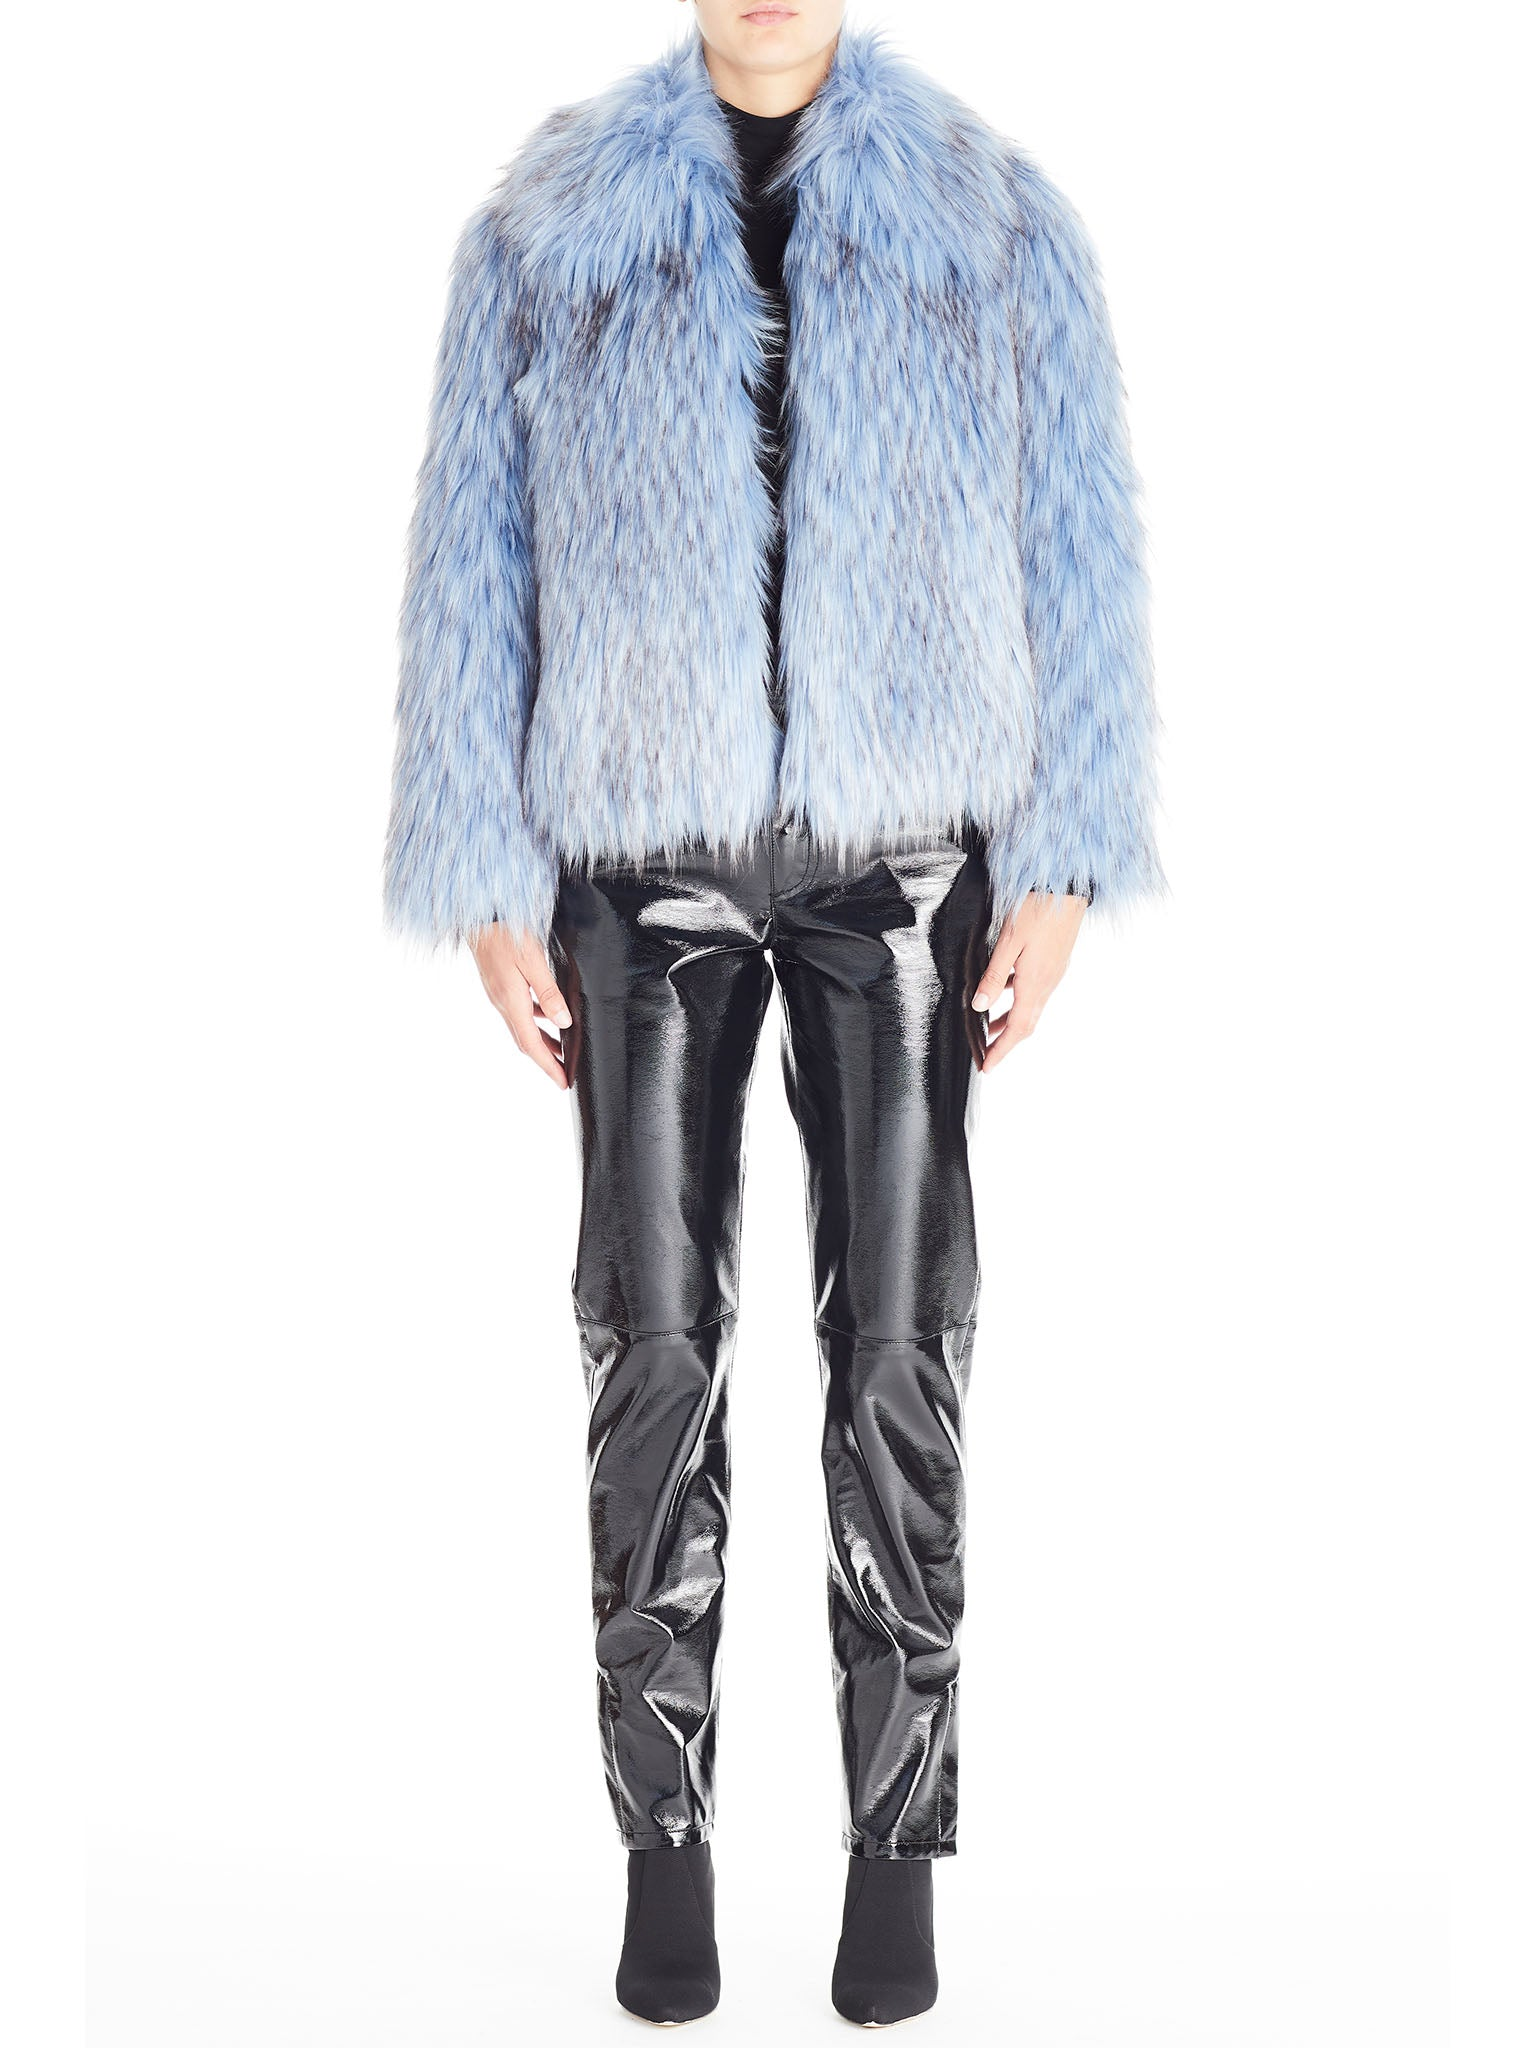 Italian Faux Fur Coat